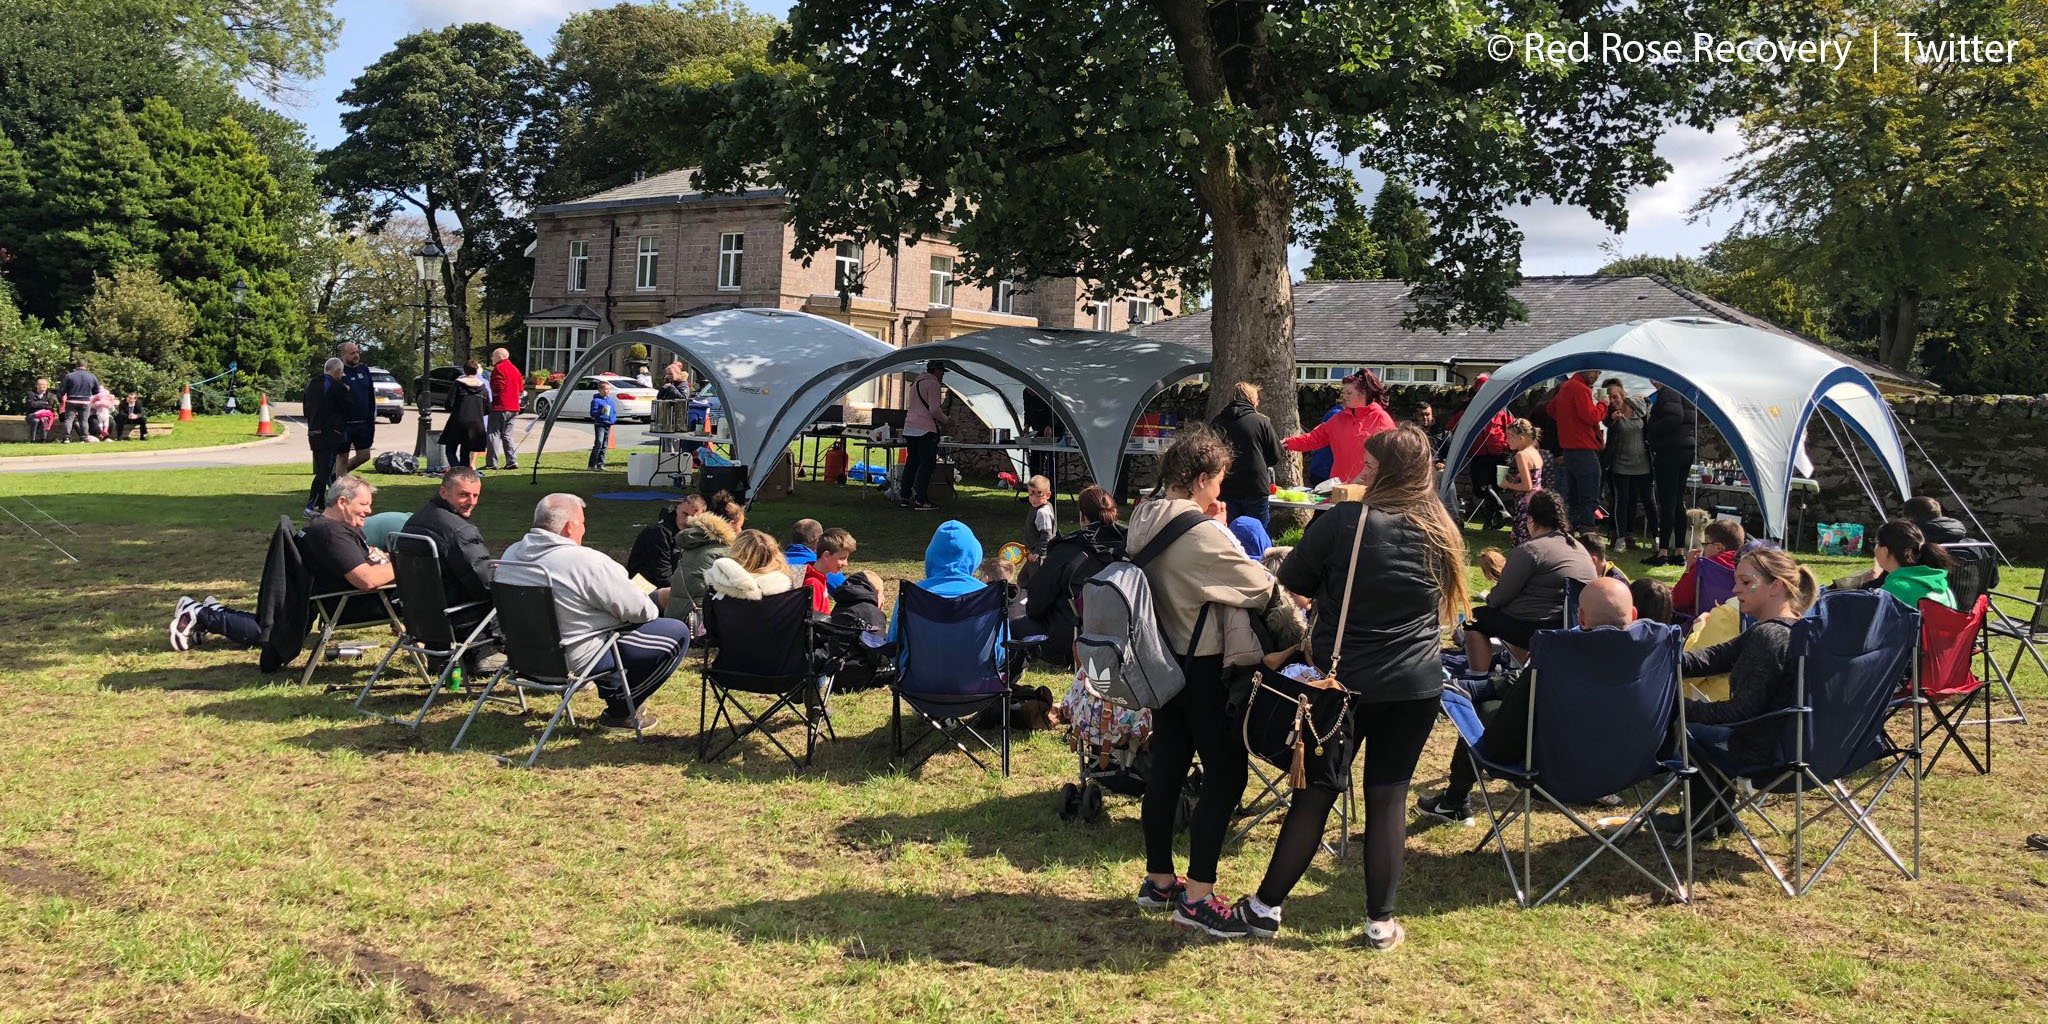 Lancashire recovery celebration: attendees at the LUFStock18 campout enjoy the sunshine